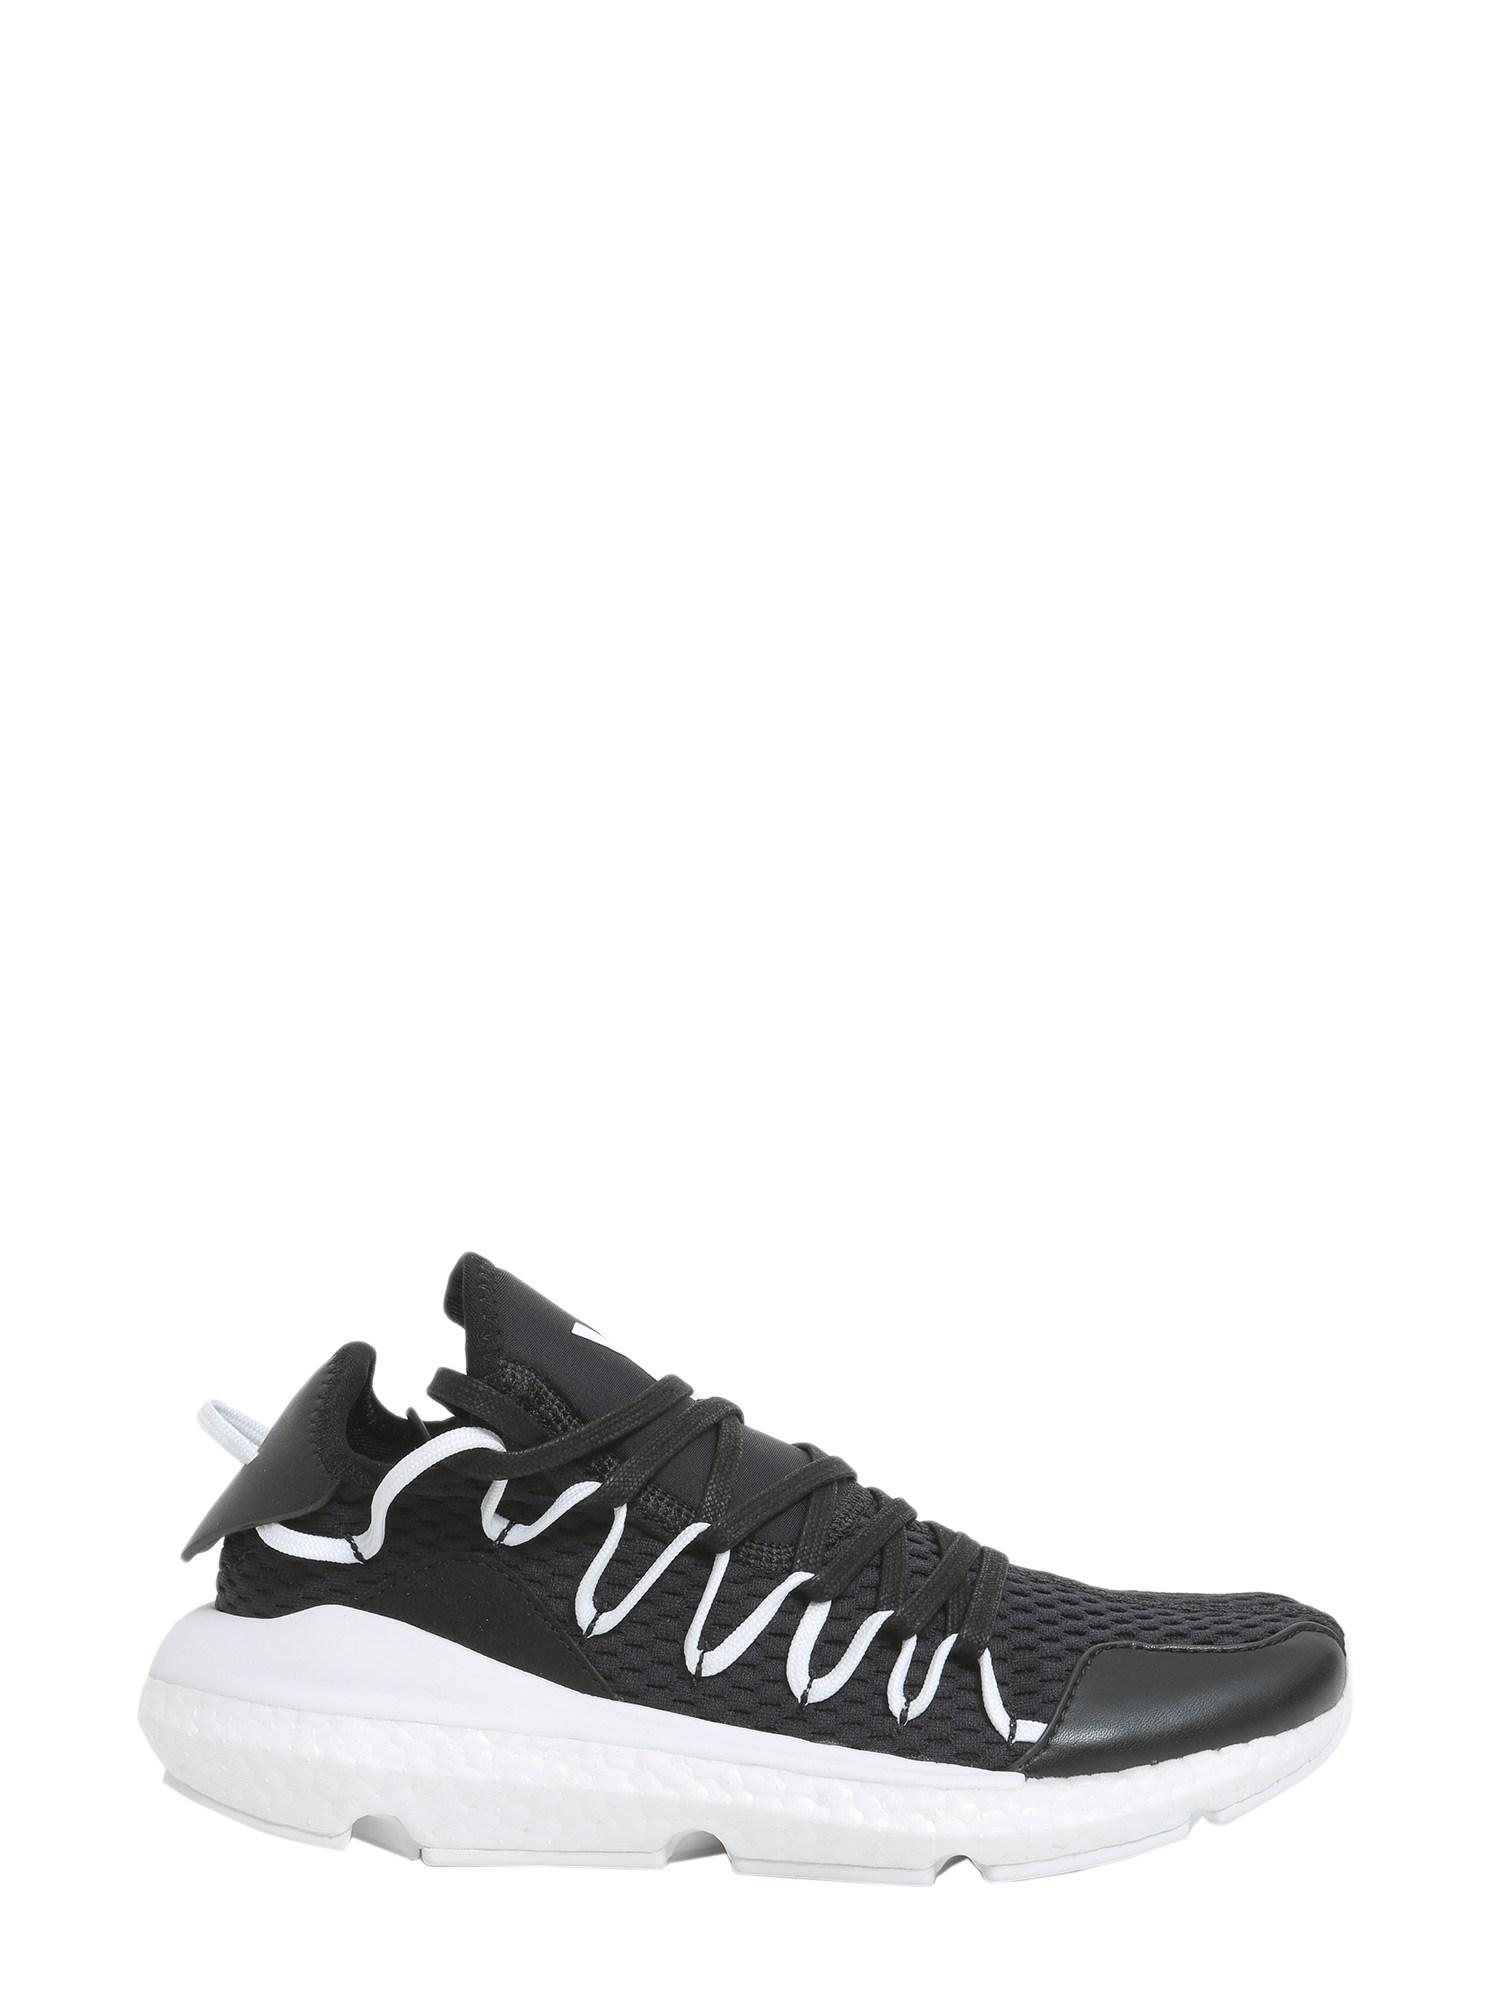 362252c4a Lyst - Y-3 Kusari Purboots Sneakers in Black for Men